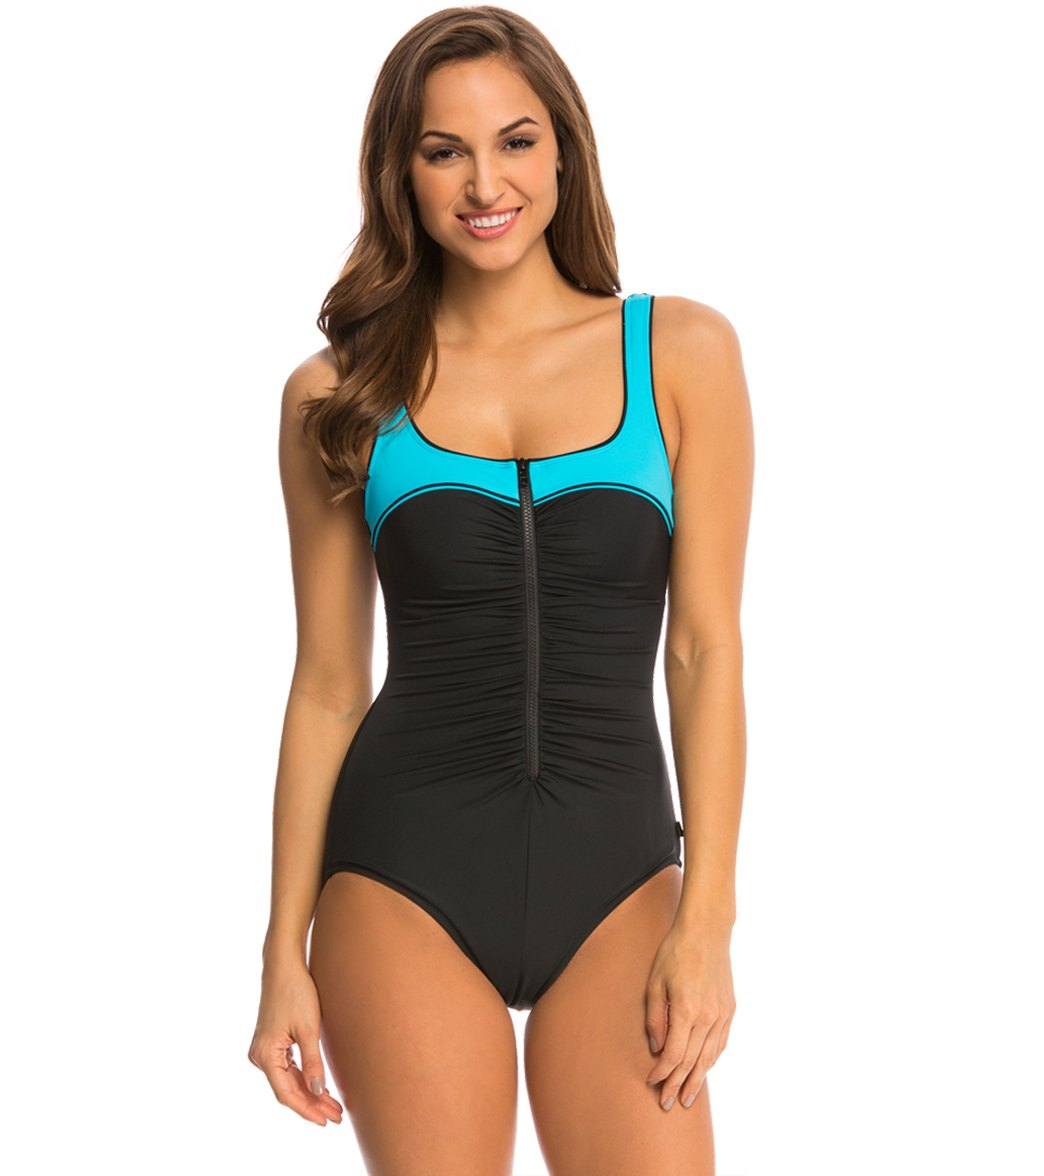 8f0a876024b8c ... Reebok Fitness Zip Tide Chlorine Resistant U-Back One Piece. Play  Video. MODEL MEASUREMENTS